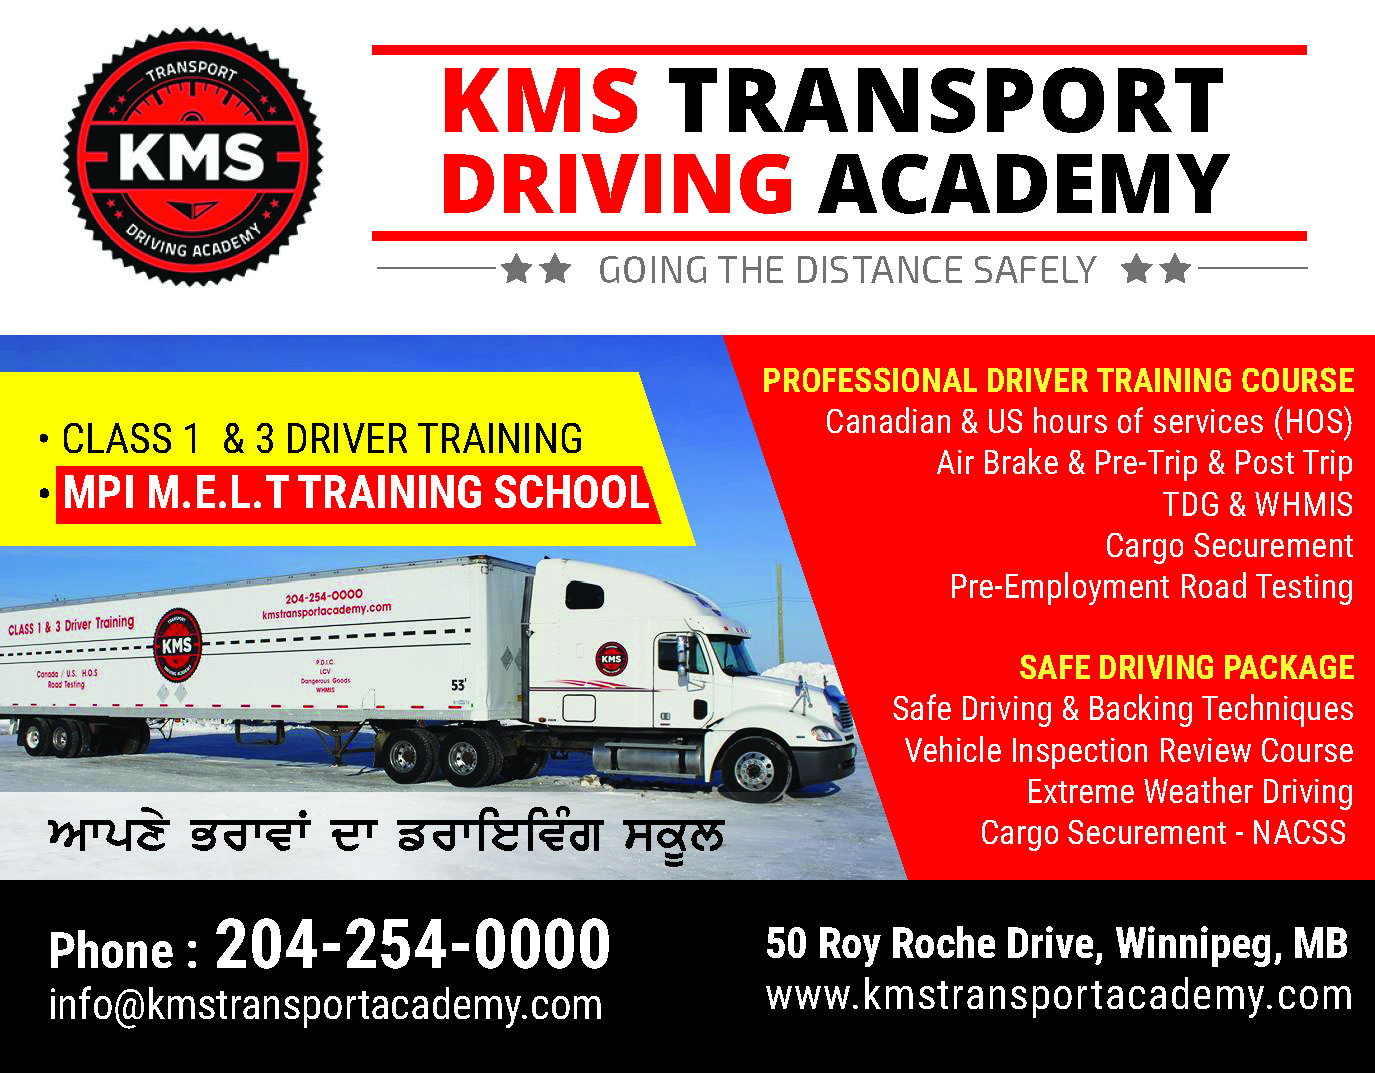 kms-transport-driving-academy-72OV1Rl.jpeg